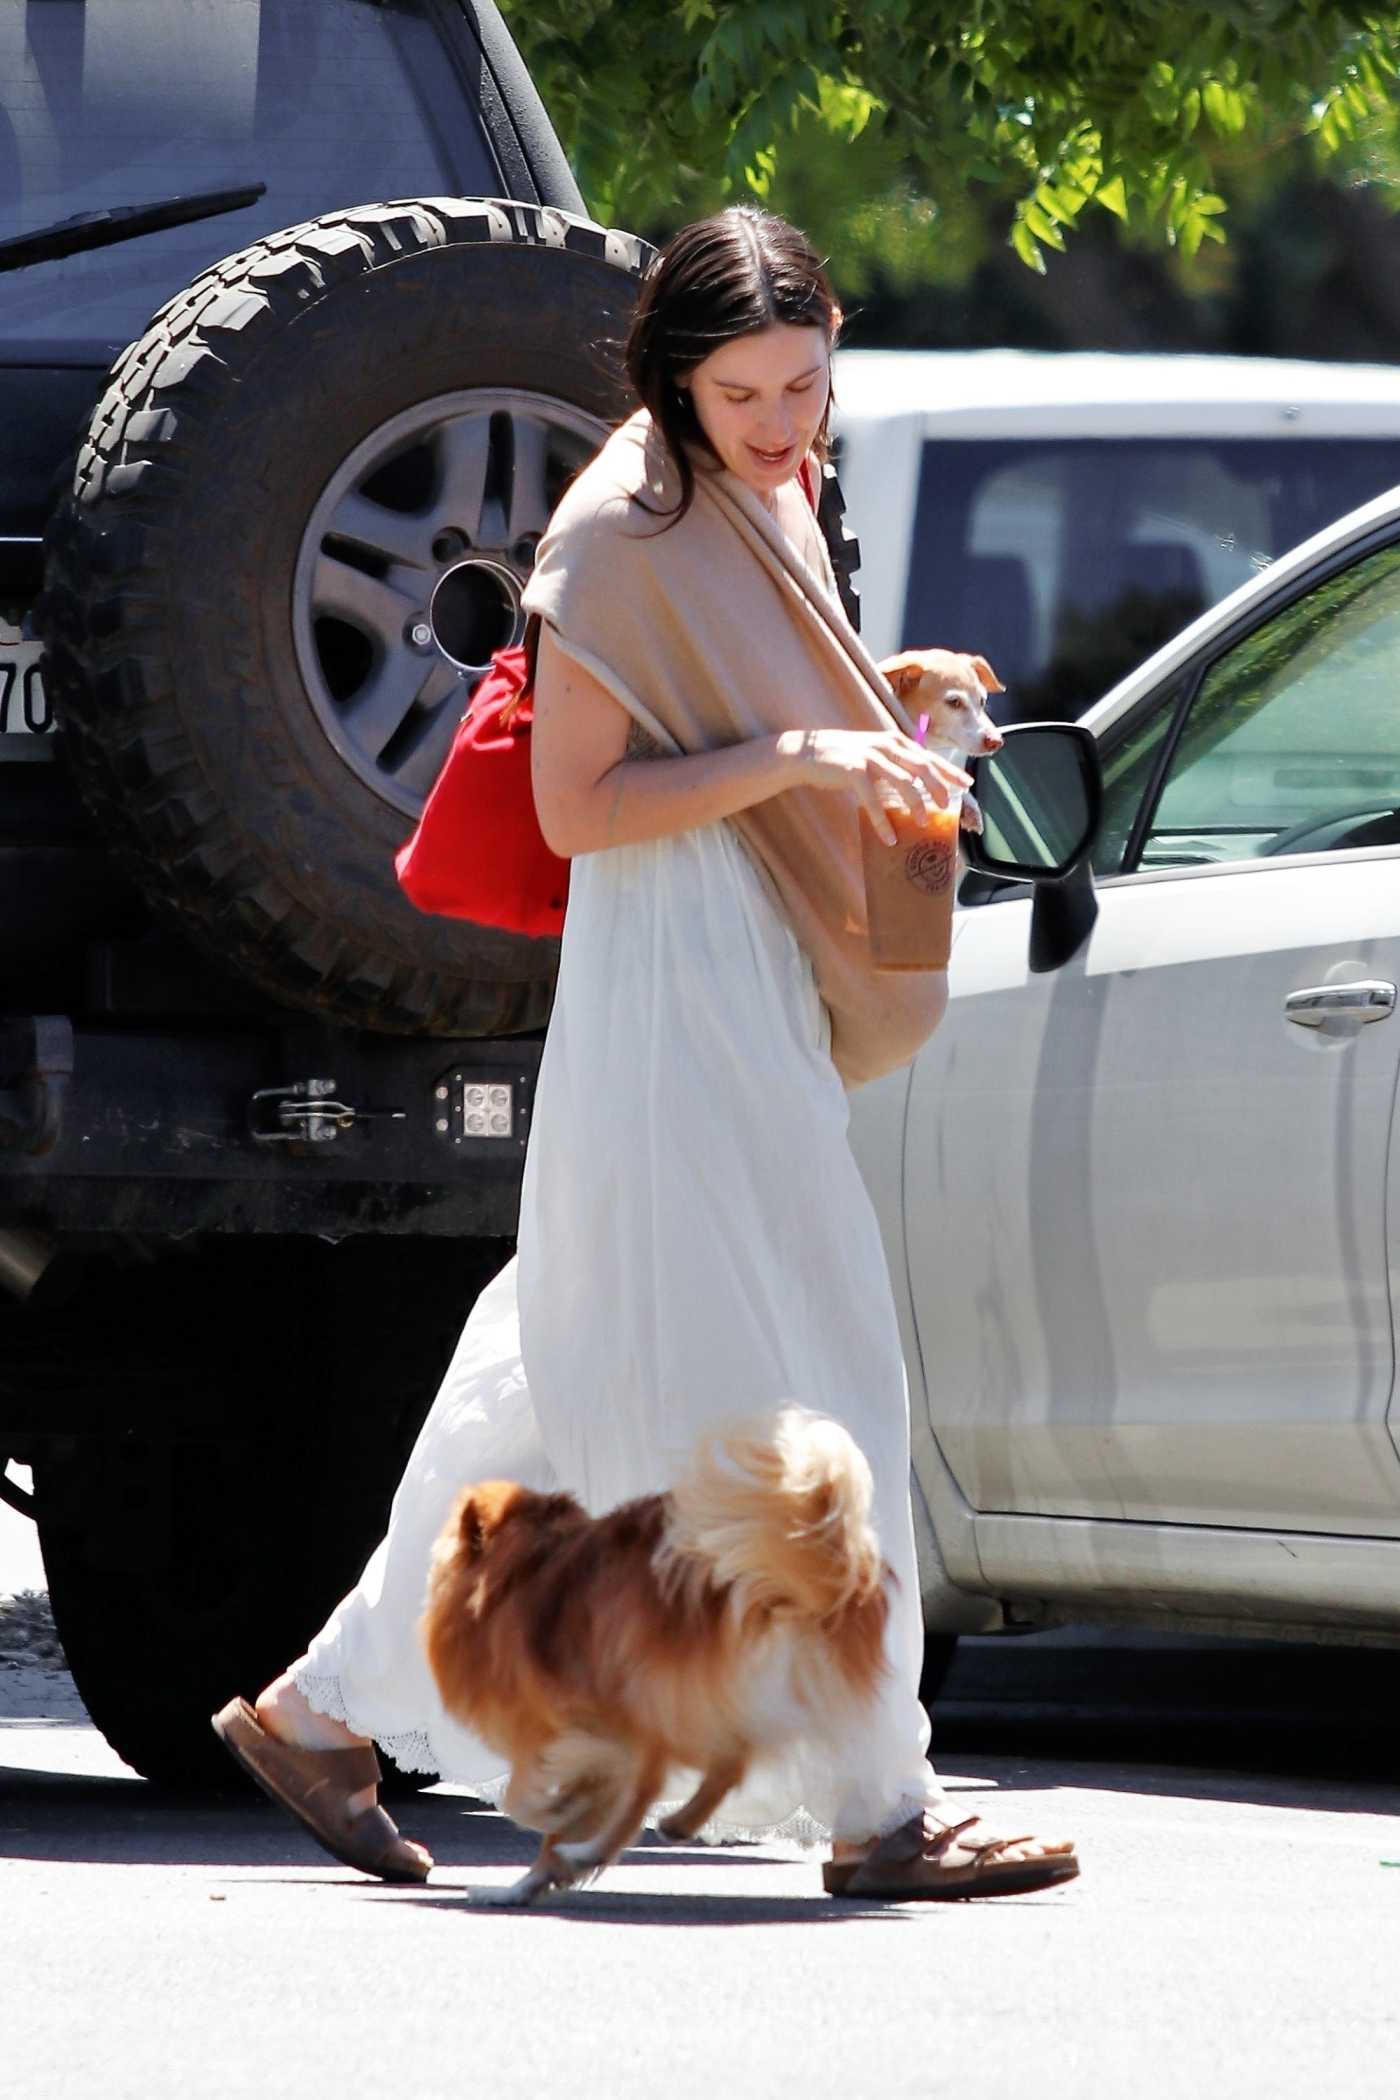 Scout Willis in a White Dress Arrives at the Park in Los Feliz 08/02/2020